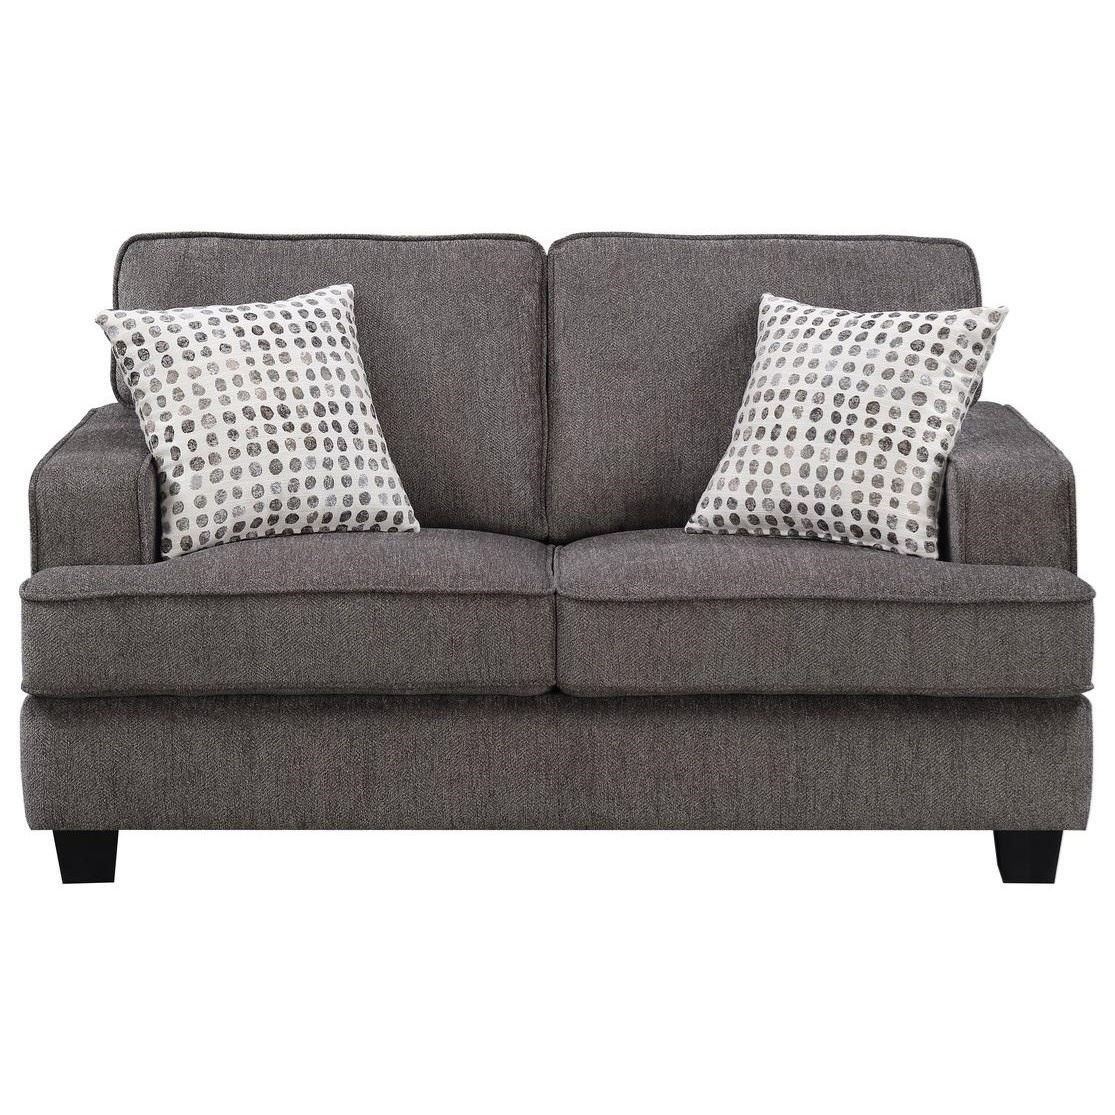 Loveseat W/2 Accent Pillows